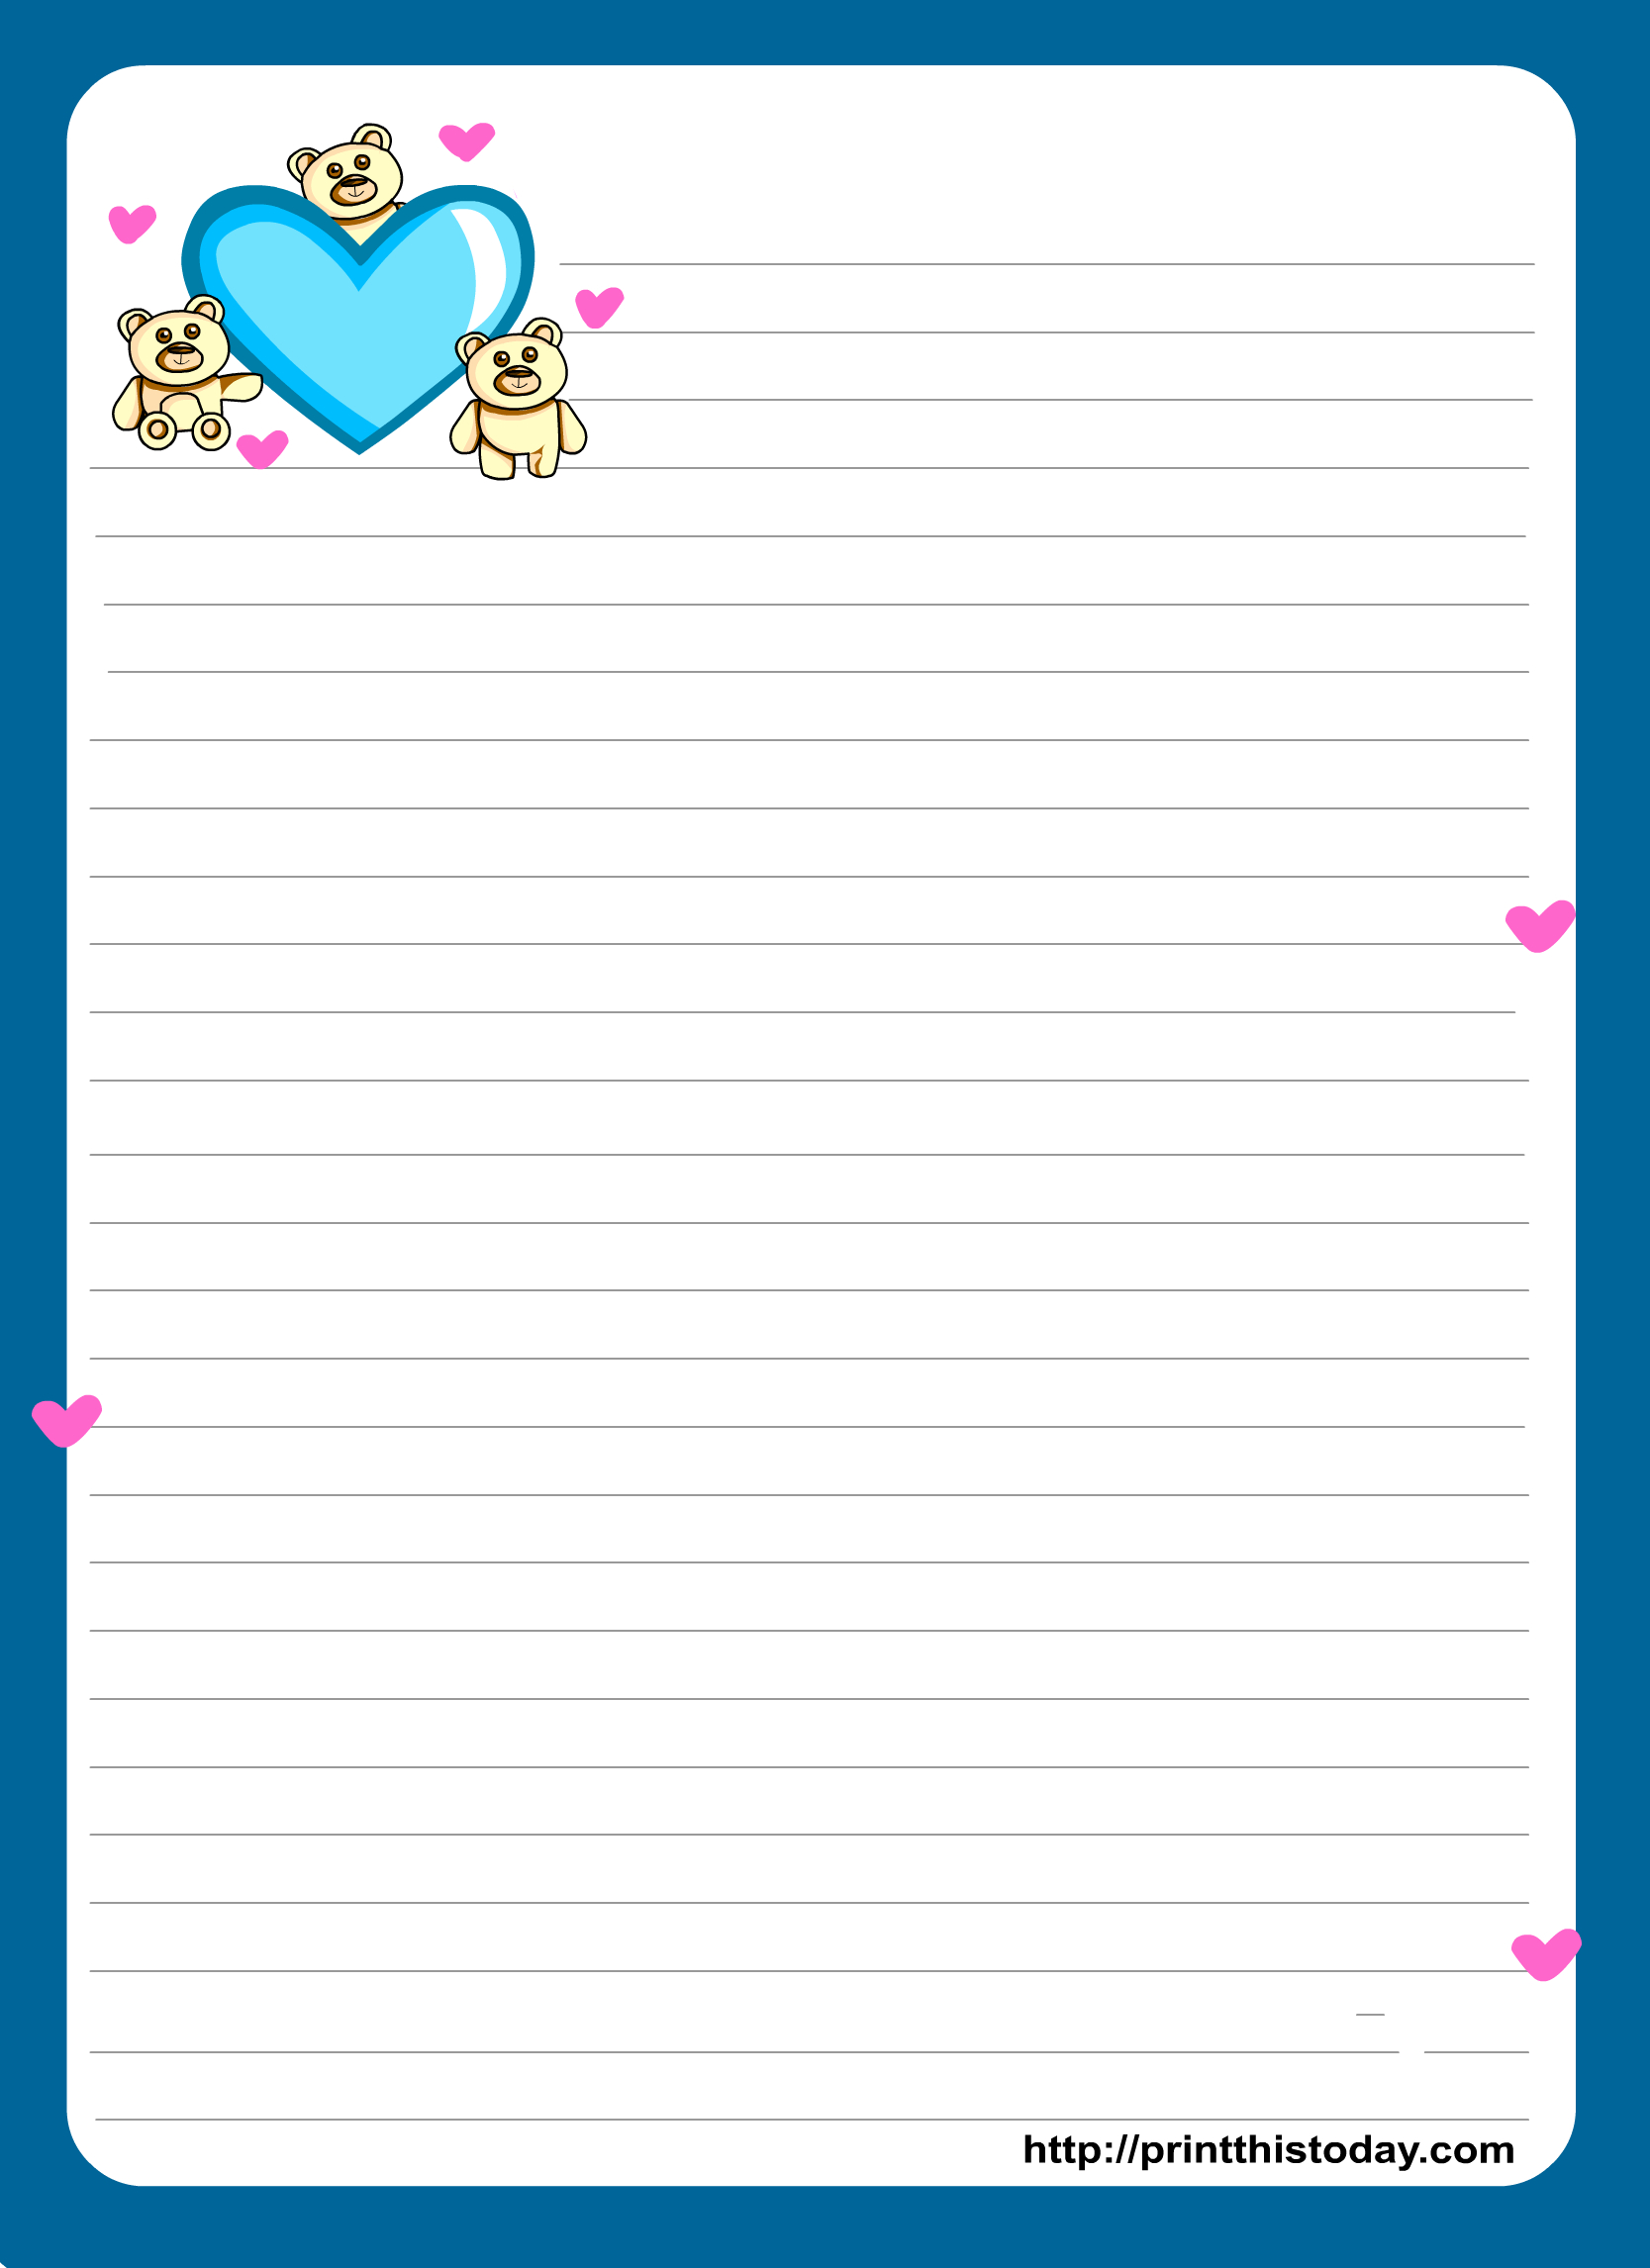 Miss You Love Letter Pad Stationery   Lined Stationery   Free - Free Printable Stationery Pdf